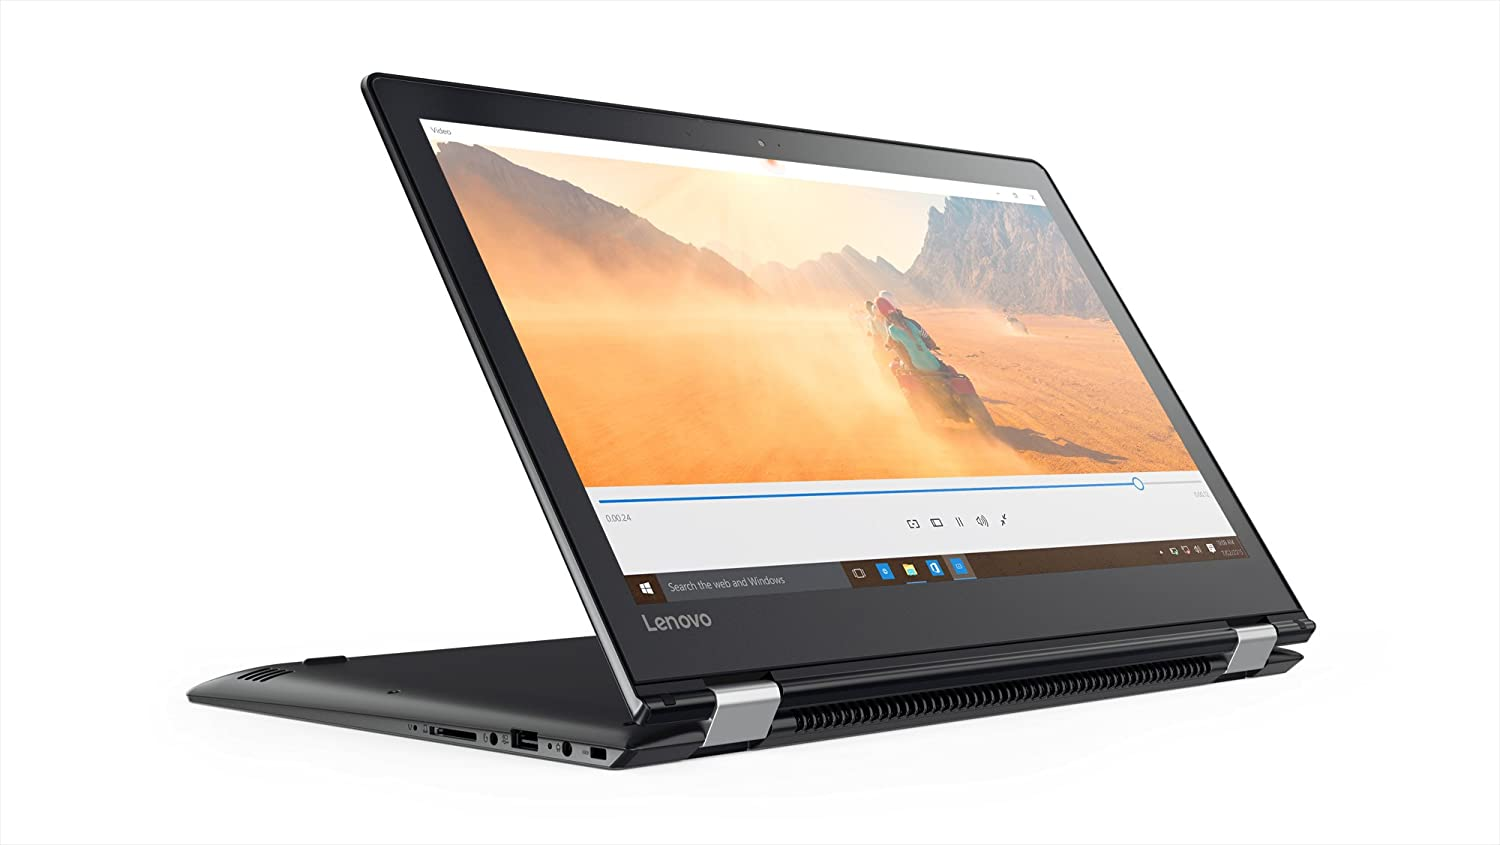 Lenovo IdeaPad Flex 10 Notebook: reviews, review of features, user guide